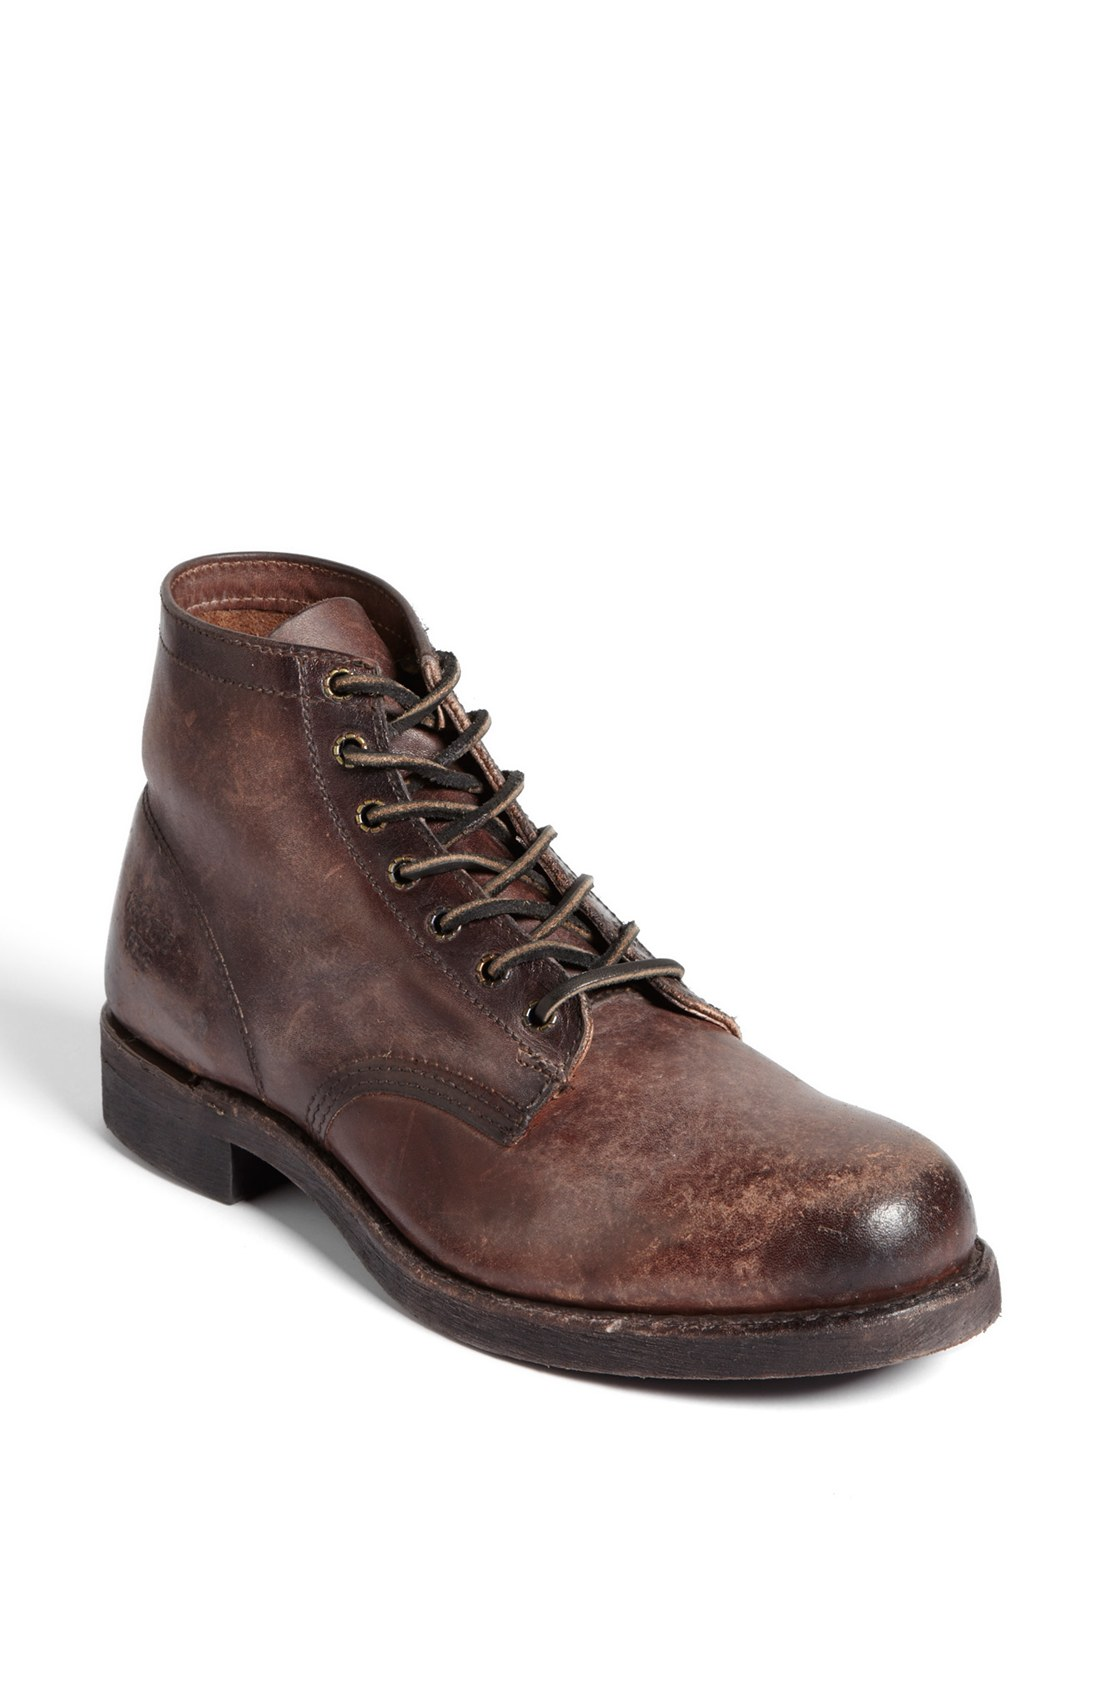 how to clean frye boots